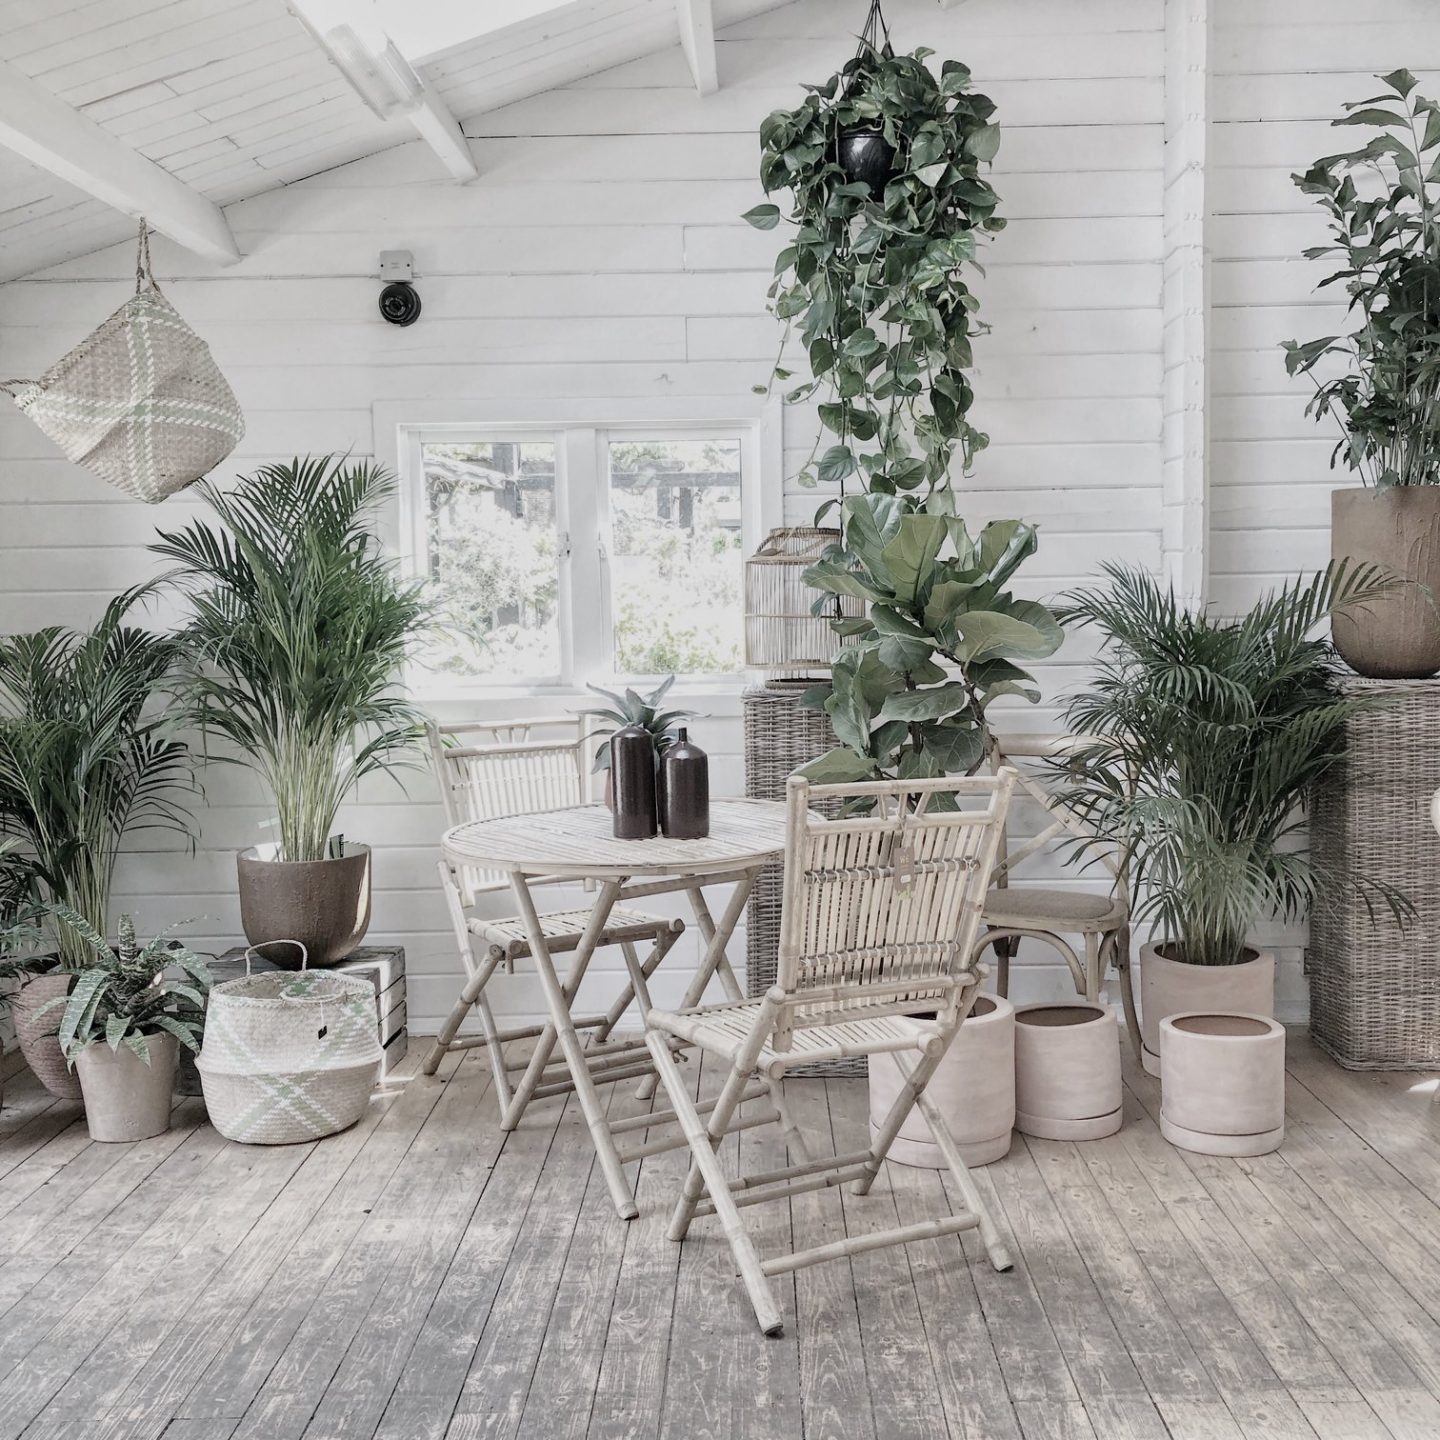 Jungalow style at W6 Garden Centre, one of London's plant shops